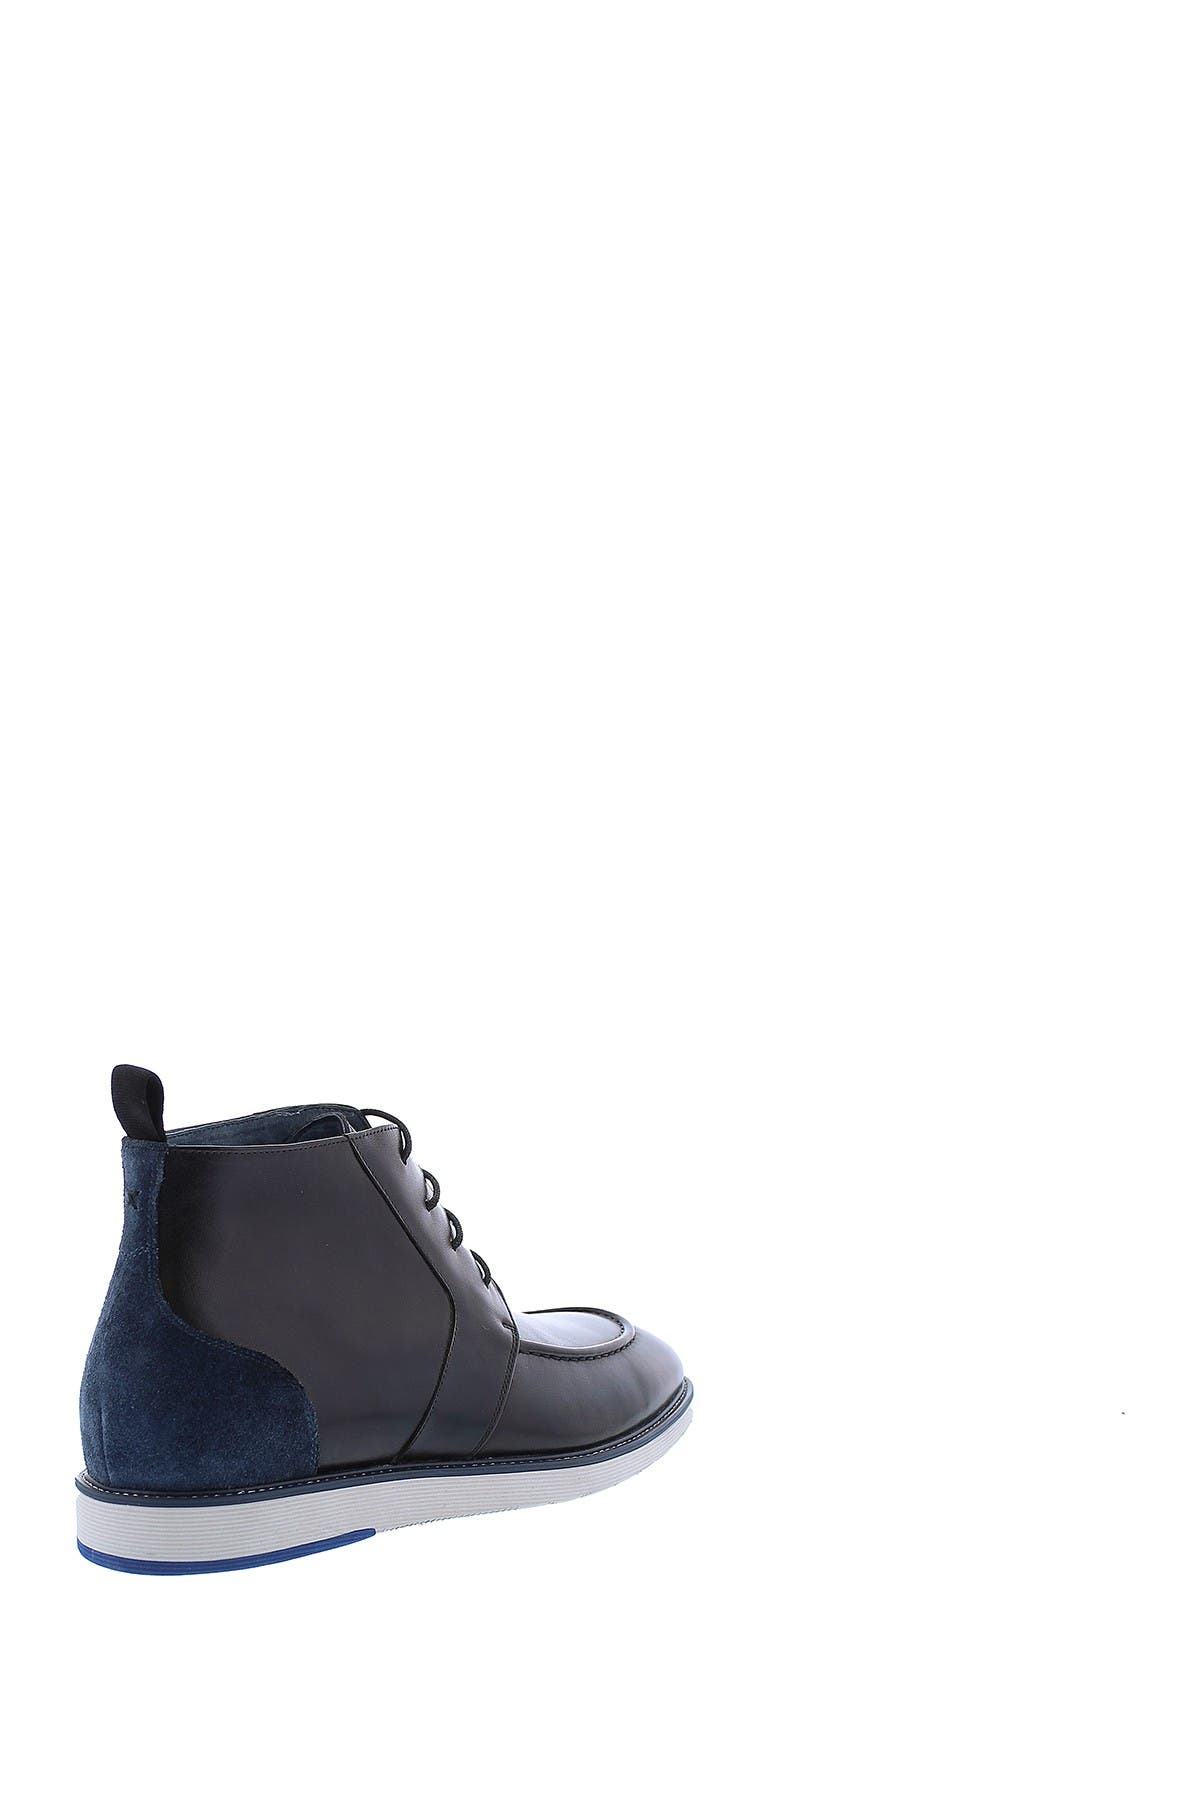 English Laundry Winthrop Boot In Black